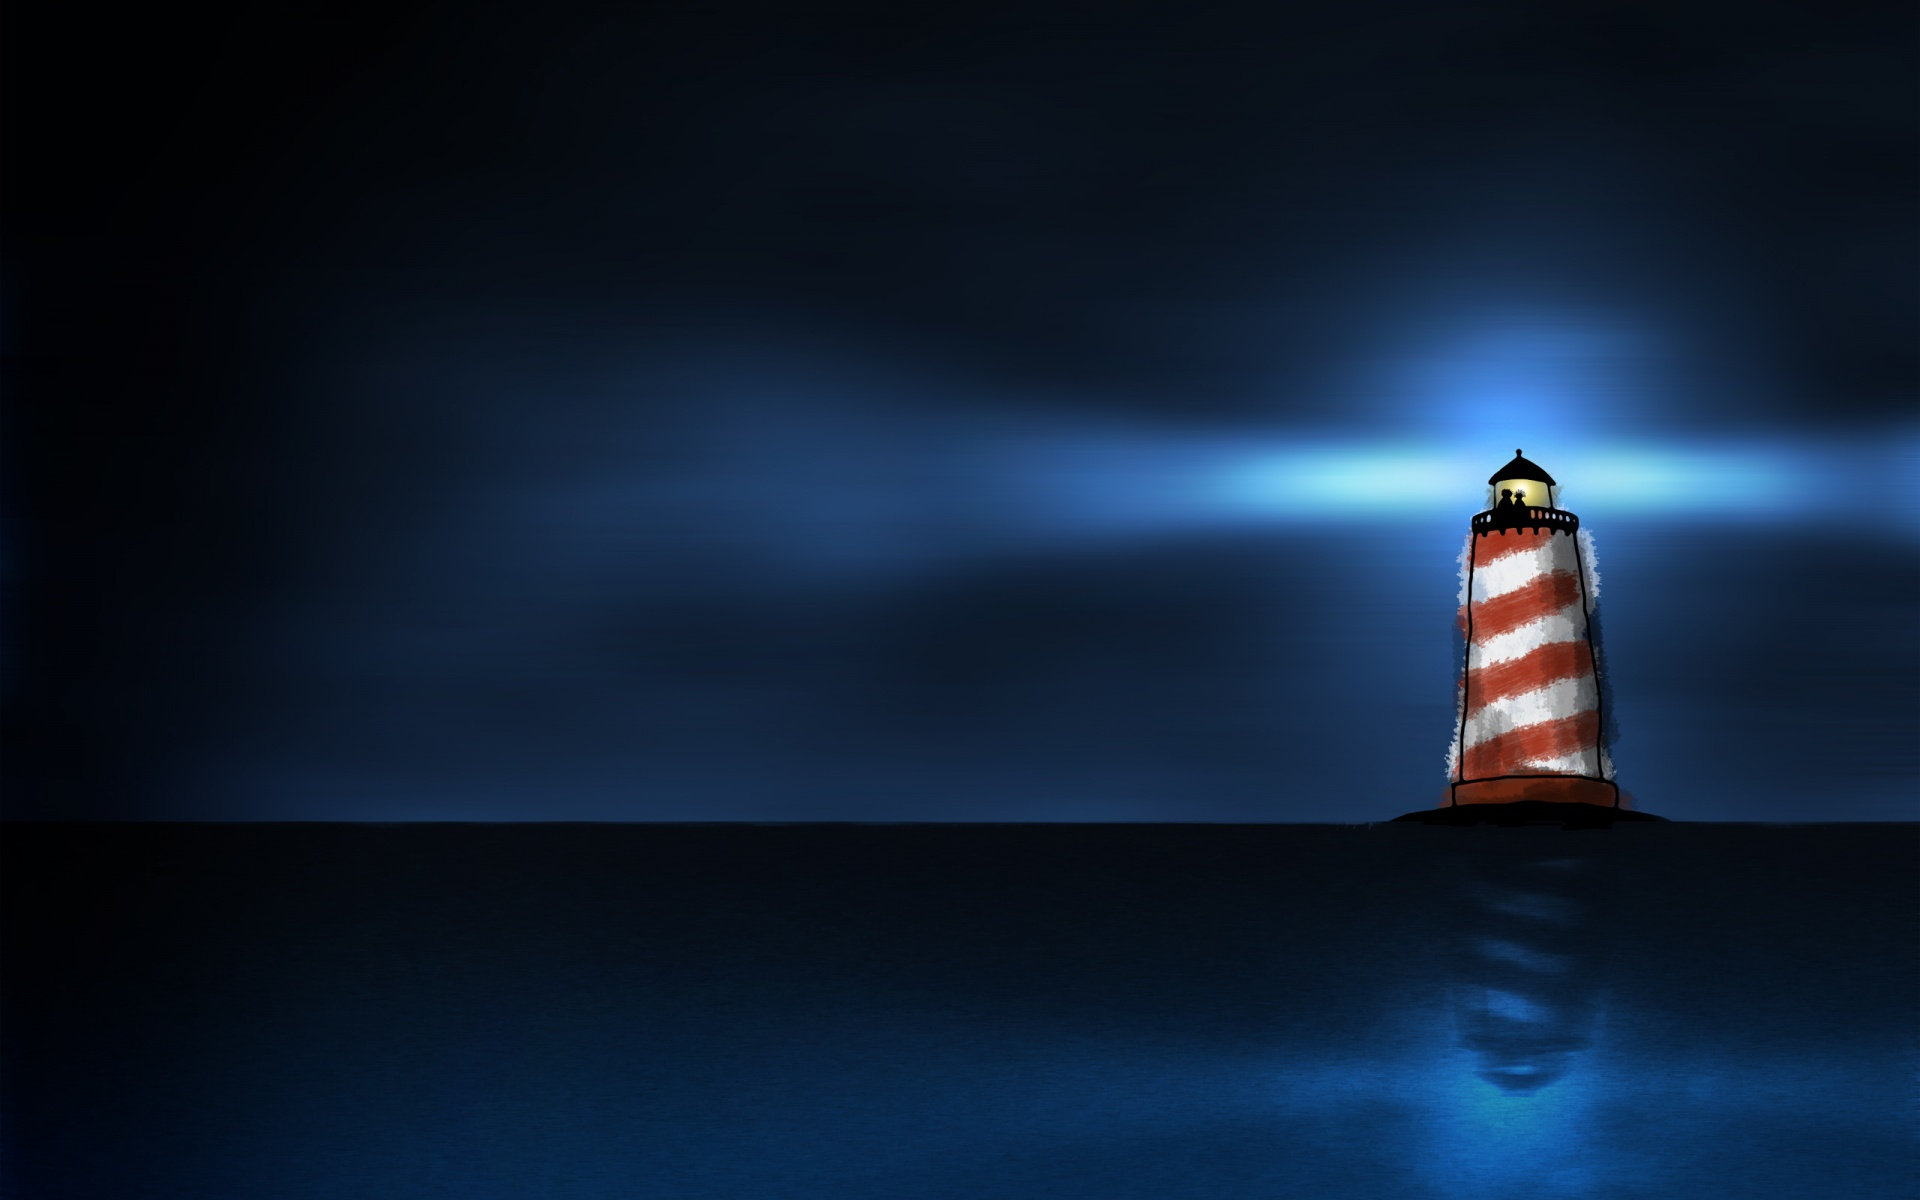 Lighthouse clipart red and blue Water drawing and lighthouse Download